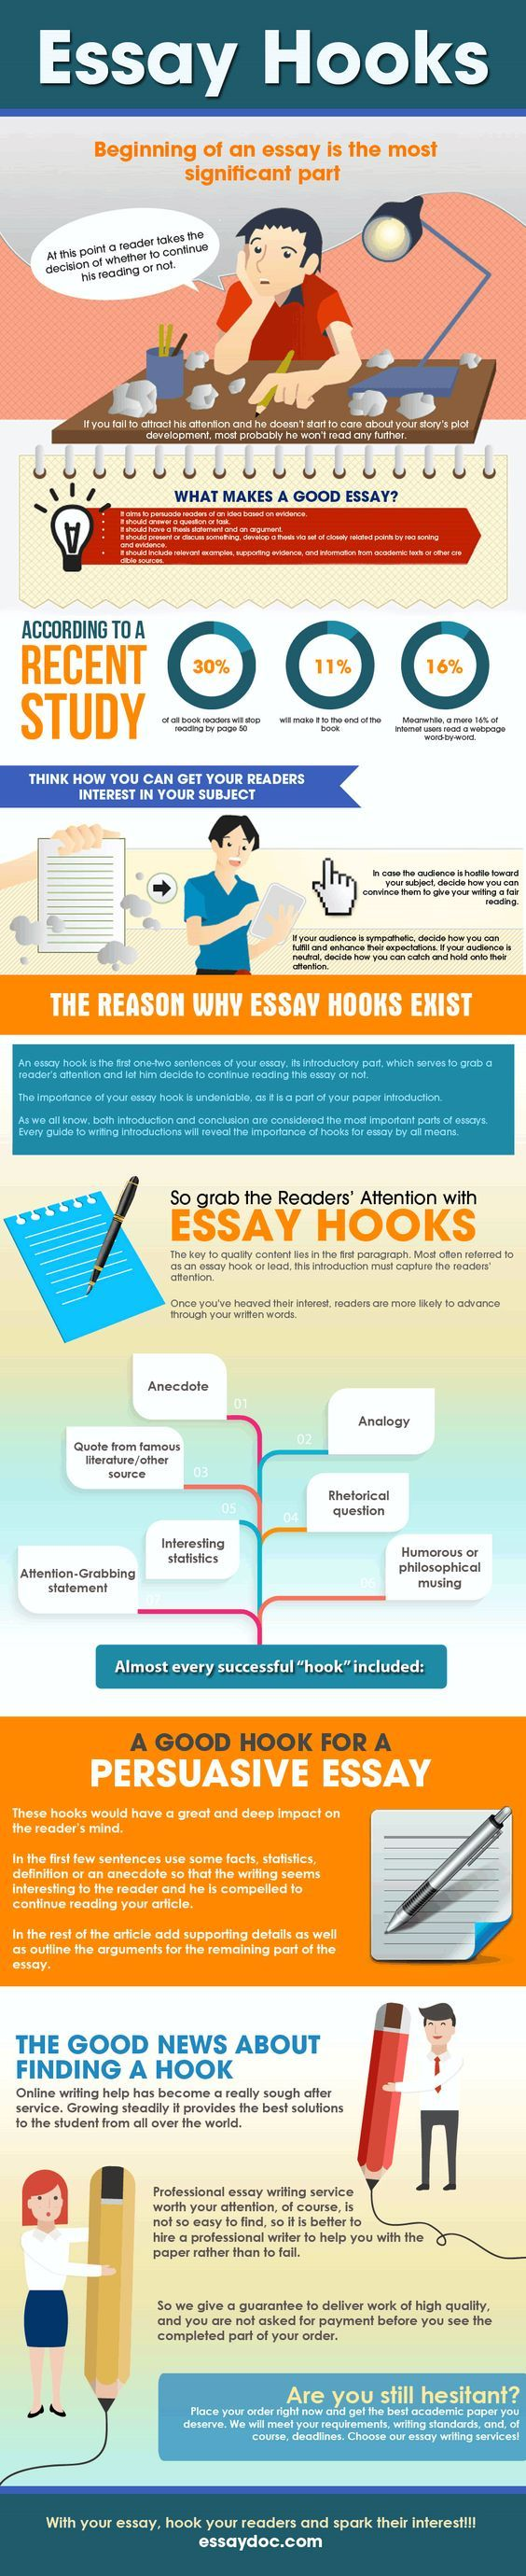 is the world changing for the better essay best ideas about essay best ideas about essay writing tips essay tips 17 best ideas about essay writing tips essay grade my sat essay prompt is the world changing